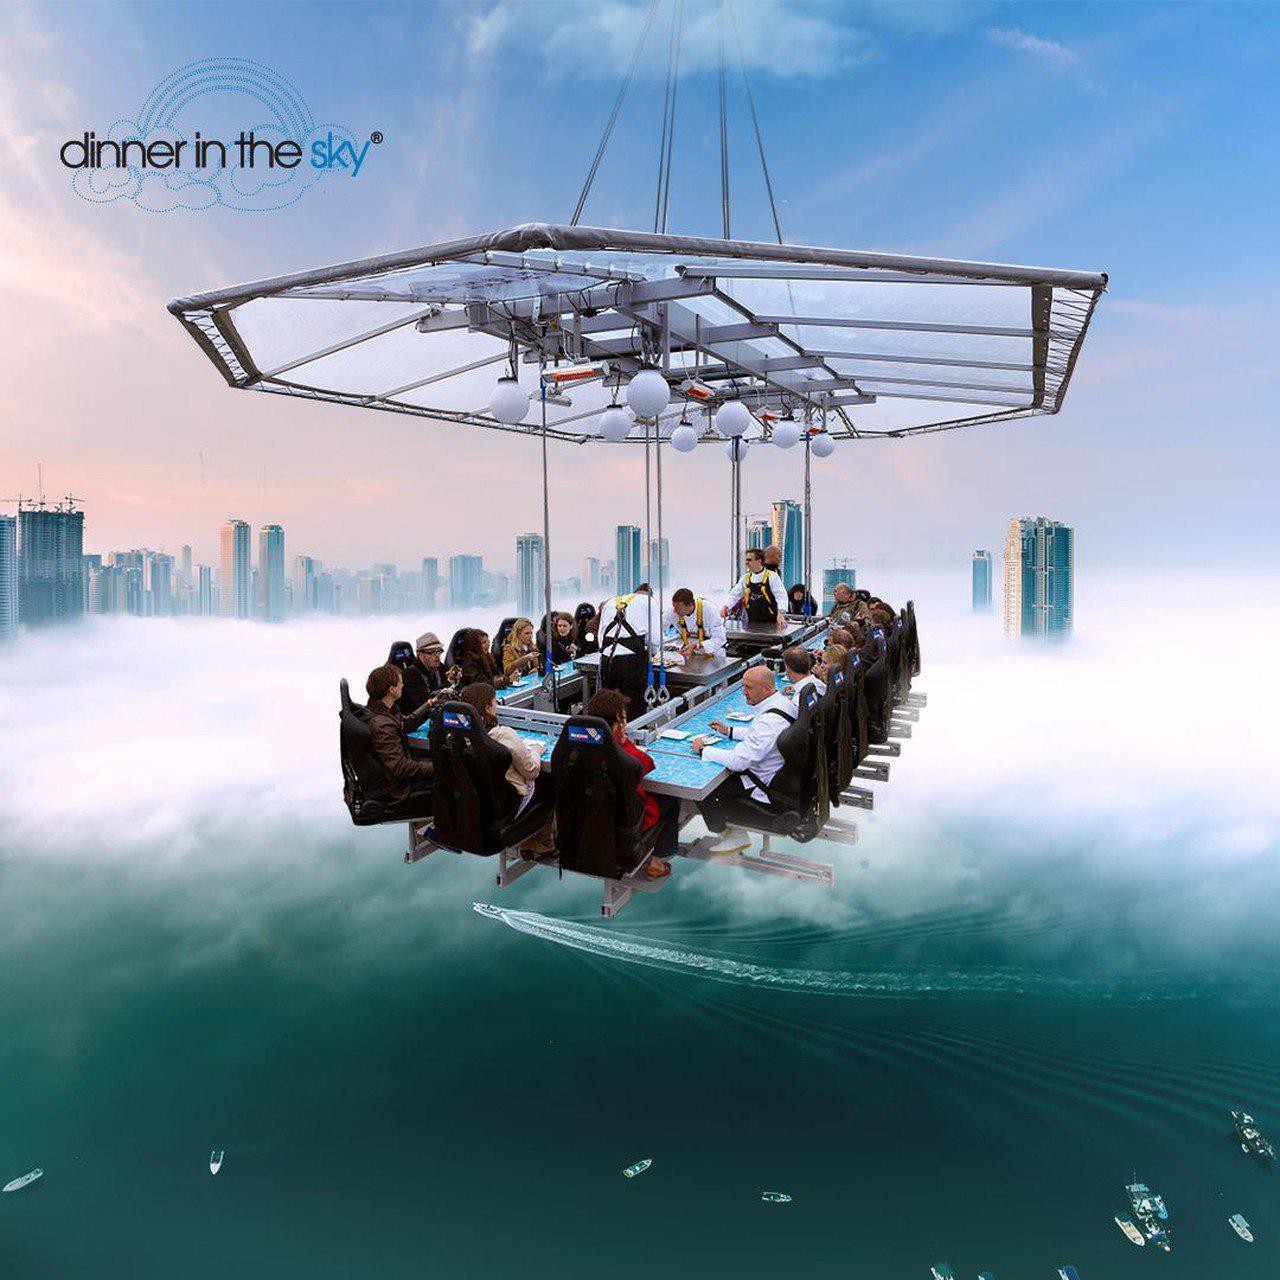 Dortmund corporate event venues Lieu Atypique Dinner in the sky image 0